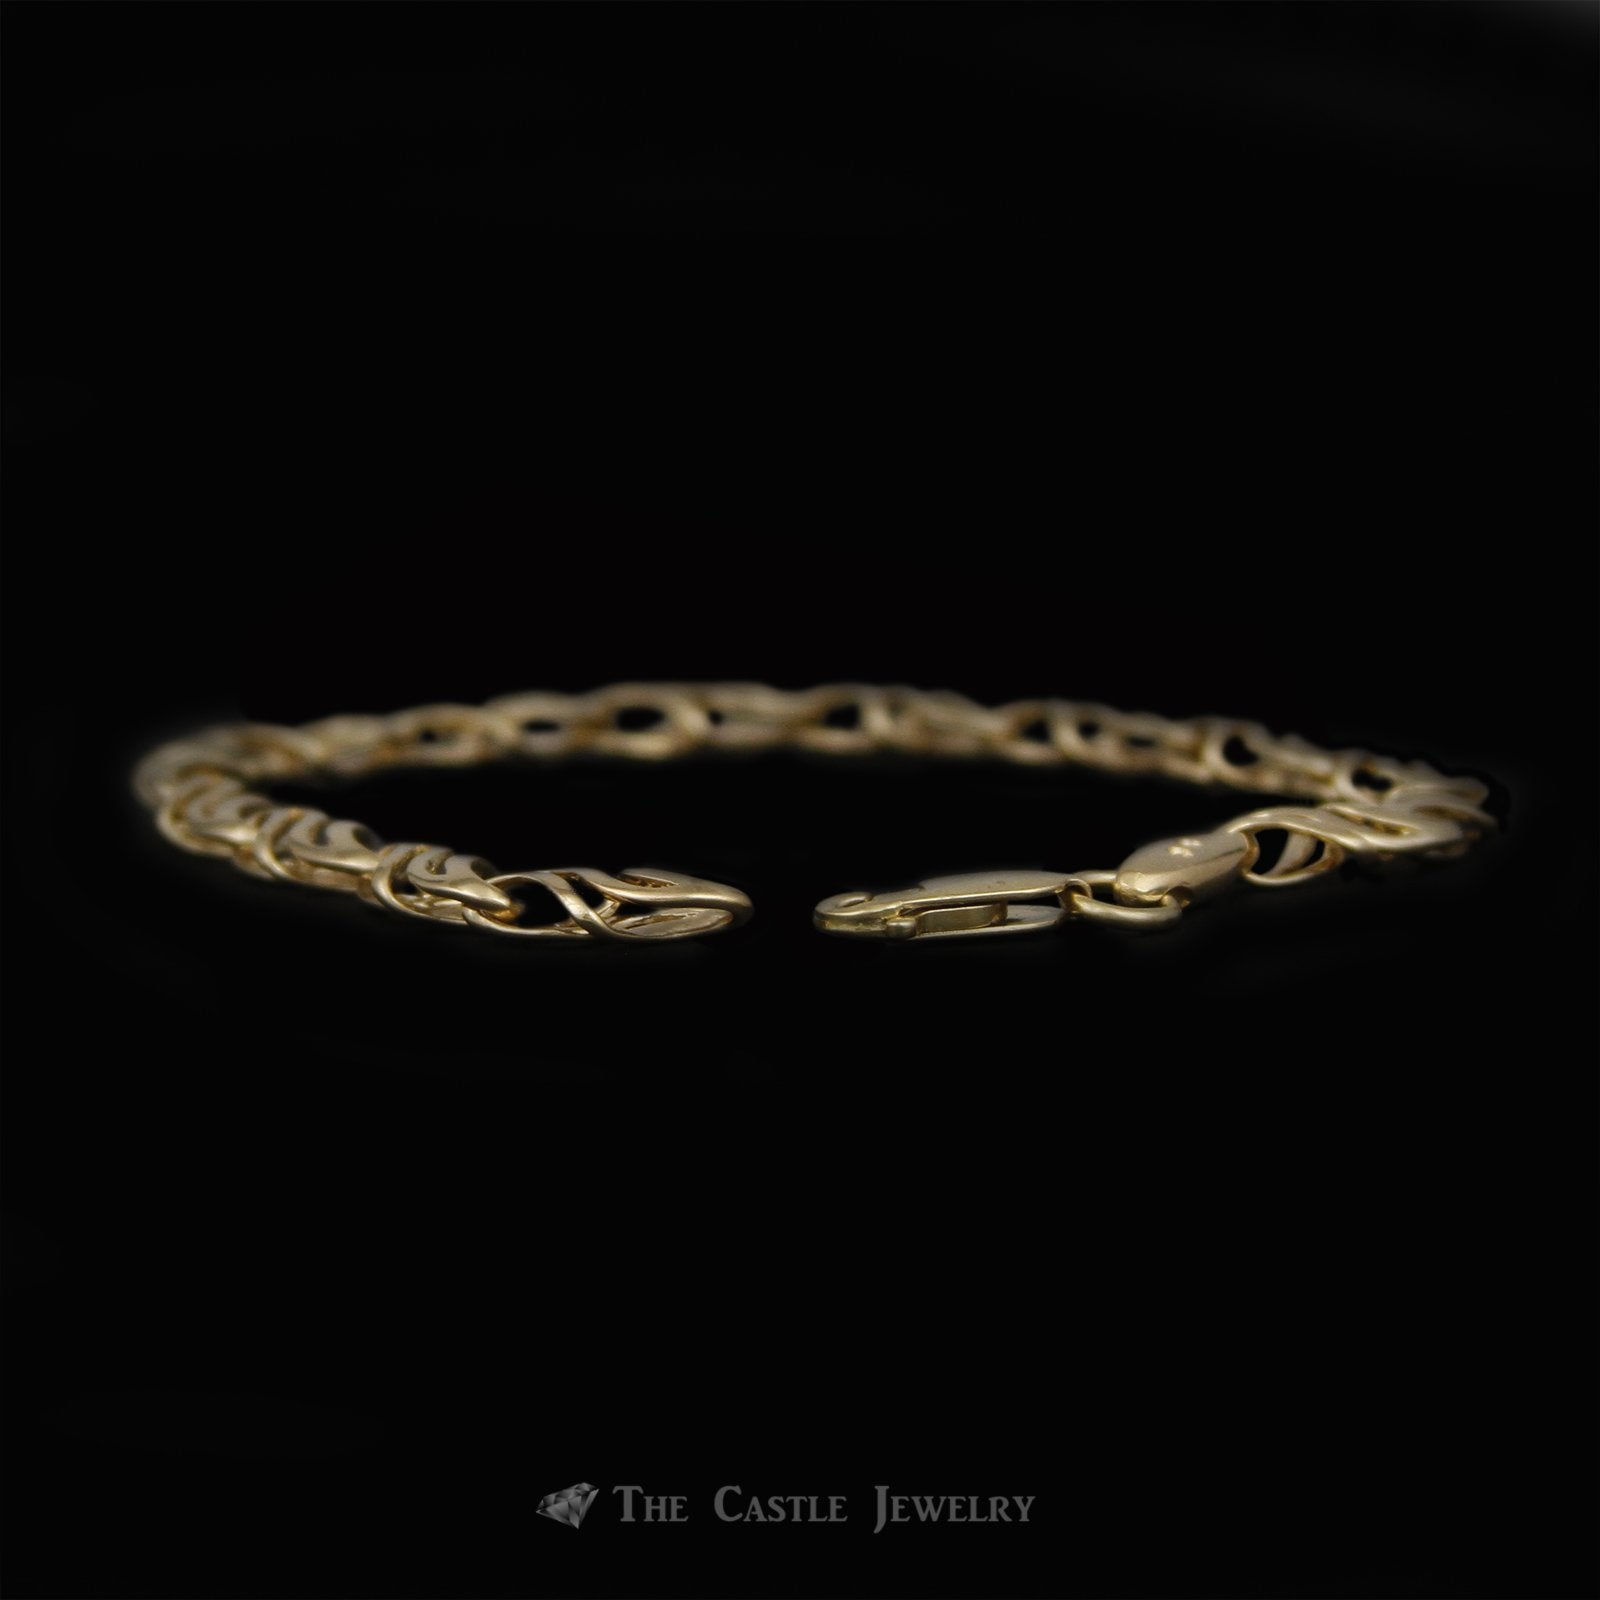 Open Swirled/Wave Design Link 7.5 Inch Gold Bracelet Crafted in 14k Yellow Gold